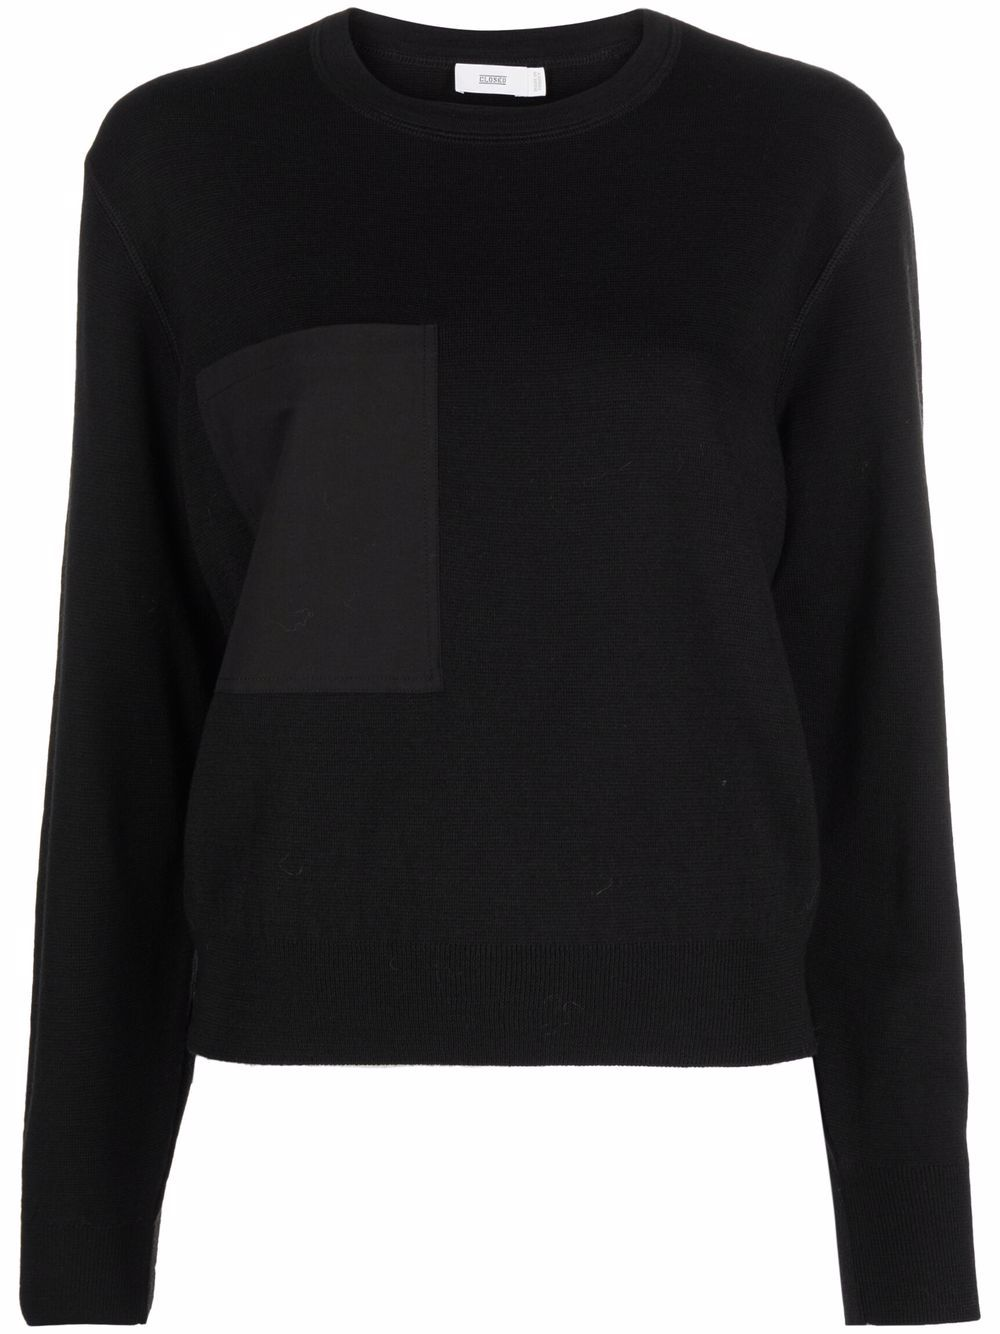 CLOSED- Patch-pocket Knittet Top- Woman- Xs - Black